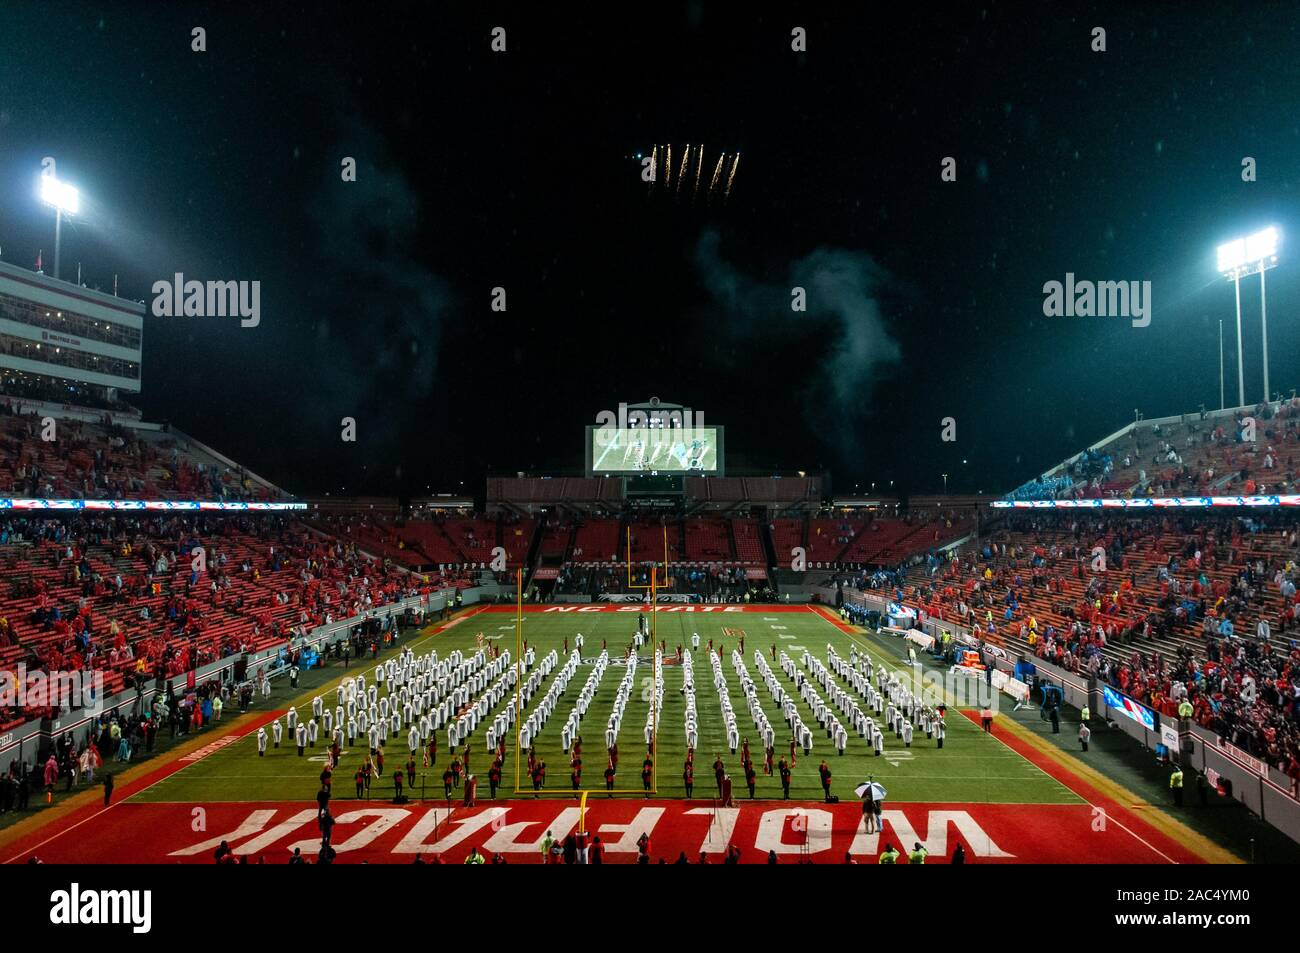 Raleigh, North Carolina, USA. 30th Nov, 2019. Nov. 30, 2019 - Raleigh, North Carolina, USA - The NC State band, 'The Most Dangerous Band in the South, ' plays the National Anthem as a aerial demonstration team flies over Carter-Finley Stadium before Saturday's game between the NC State Wolfpack and University of North Carolina Tar Heels. The Tar Heels defeated the Wolfpack, 41-10. Credit: Timothy L. Hale/ZUMA Wire/Alamy Live News Stock Photo